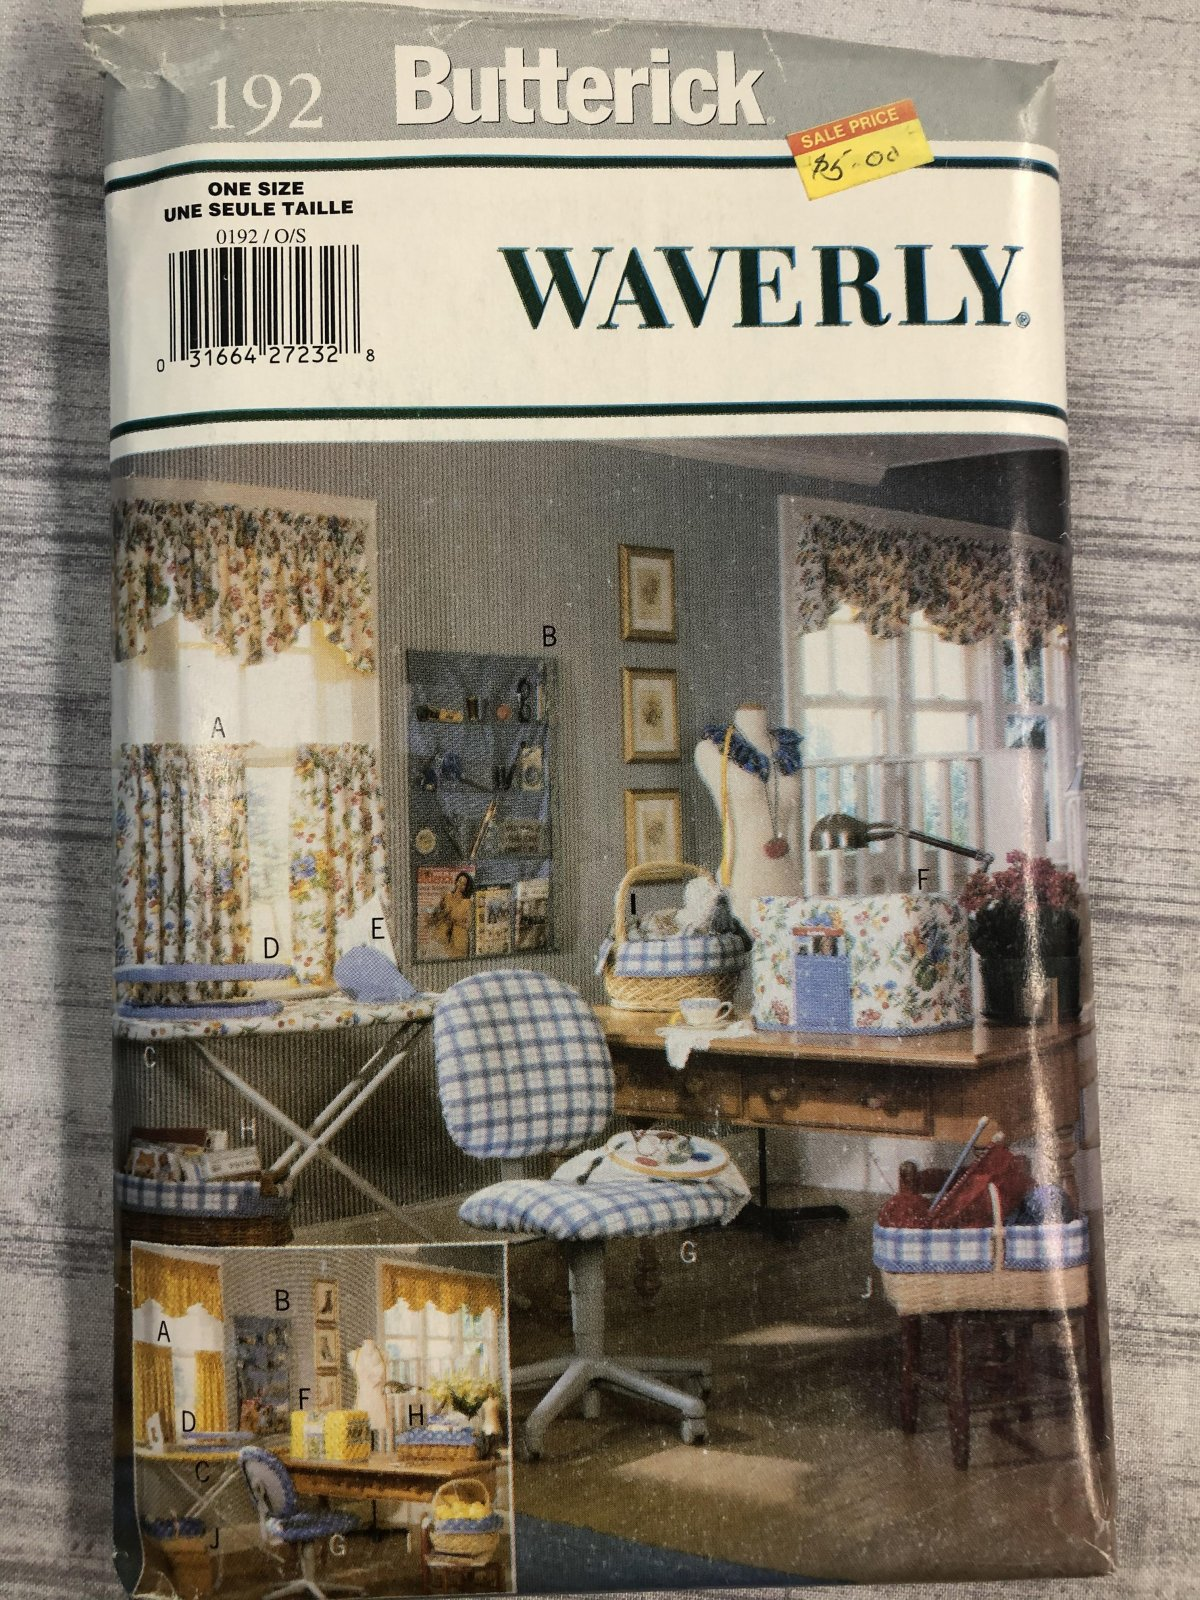 Butterick Waverly Sewing Room 0192